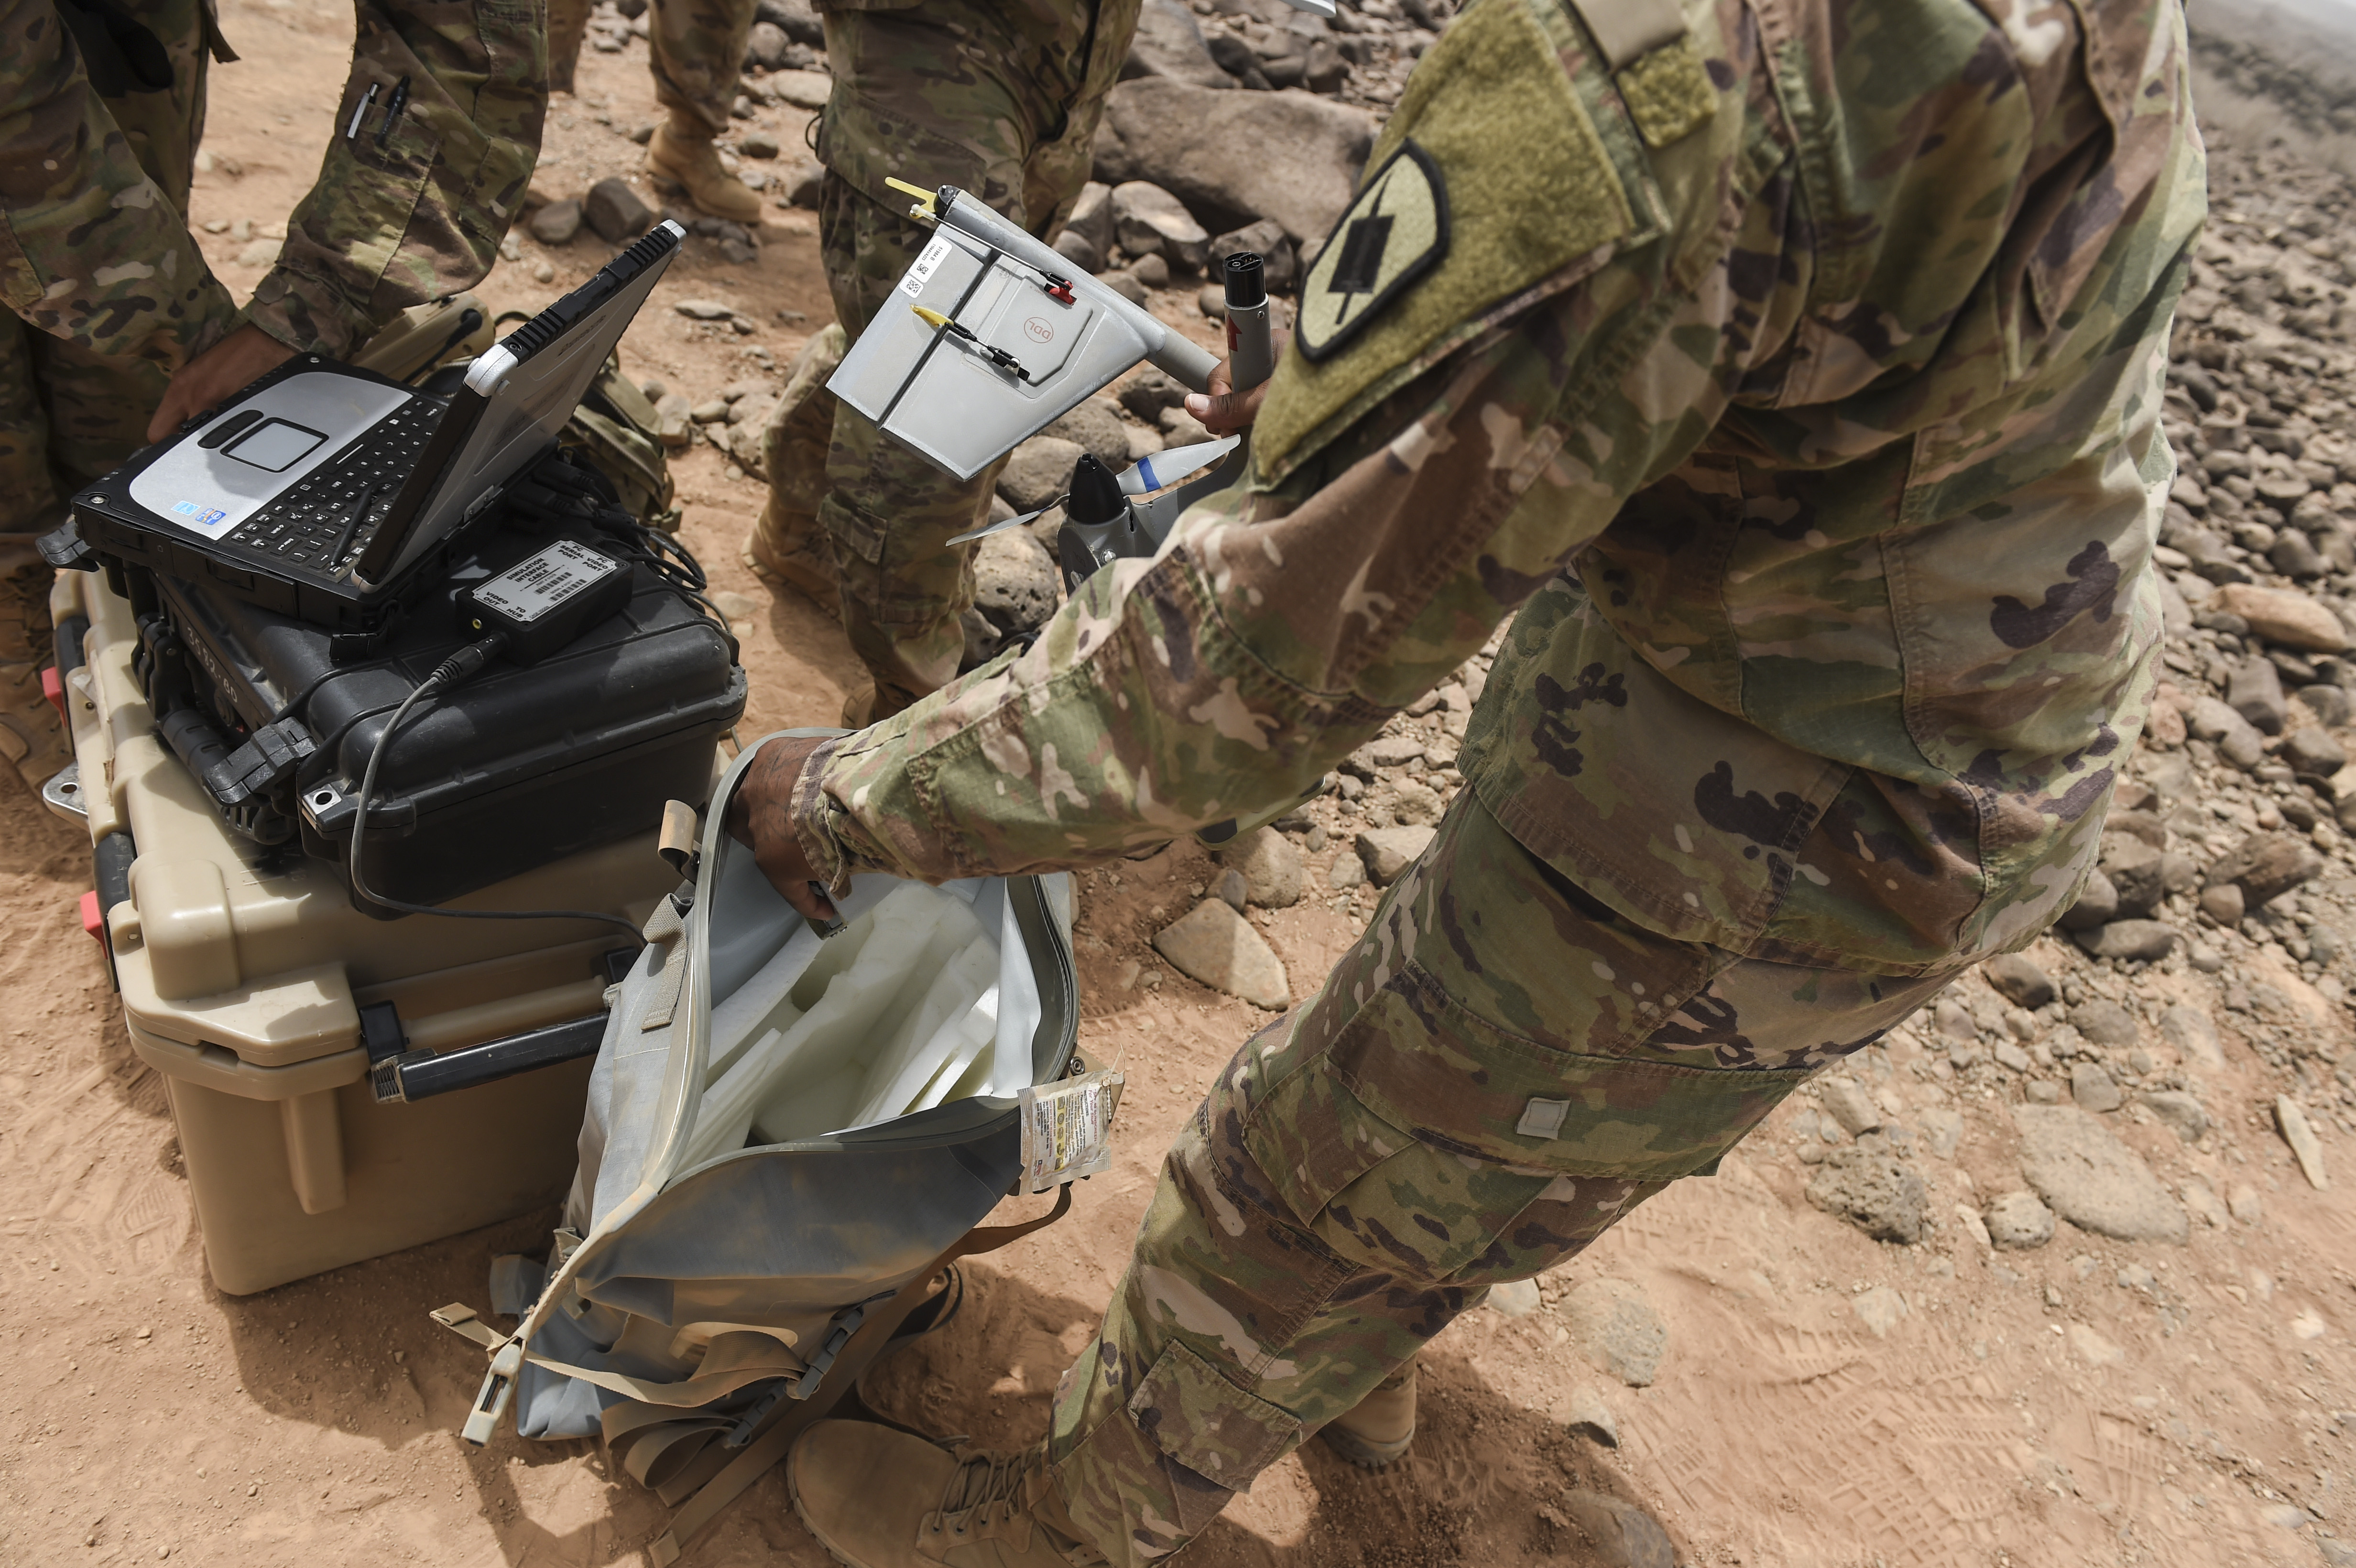 A U.S. Army Soldier assigned to the 1st Battalion, 153rd Infantry Regiment, Task Force Warrior, an associated unit of Combined Joint Task Force - Horn of Africa, disassembles a Raven RQ-11 system during a demonstration in an airfield in southern Djibouti, Aug. 21, 2017. This was part of an effort to familiarize Djibouti Armed Forces members with the unmanned aerial vehicle system, clear up confusion about the Raven RQ-11 and other RPAs, and show the safe operation of the Raven. (U.S. Air Force photo by Staff Sgt. Eboni Prince)